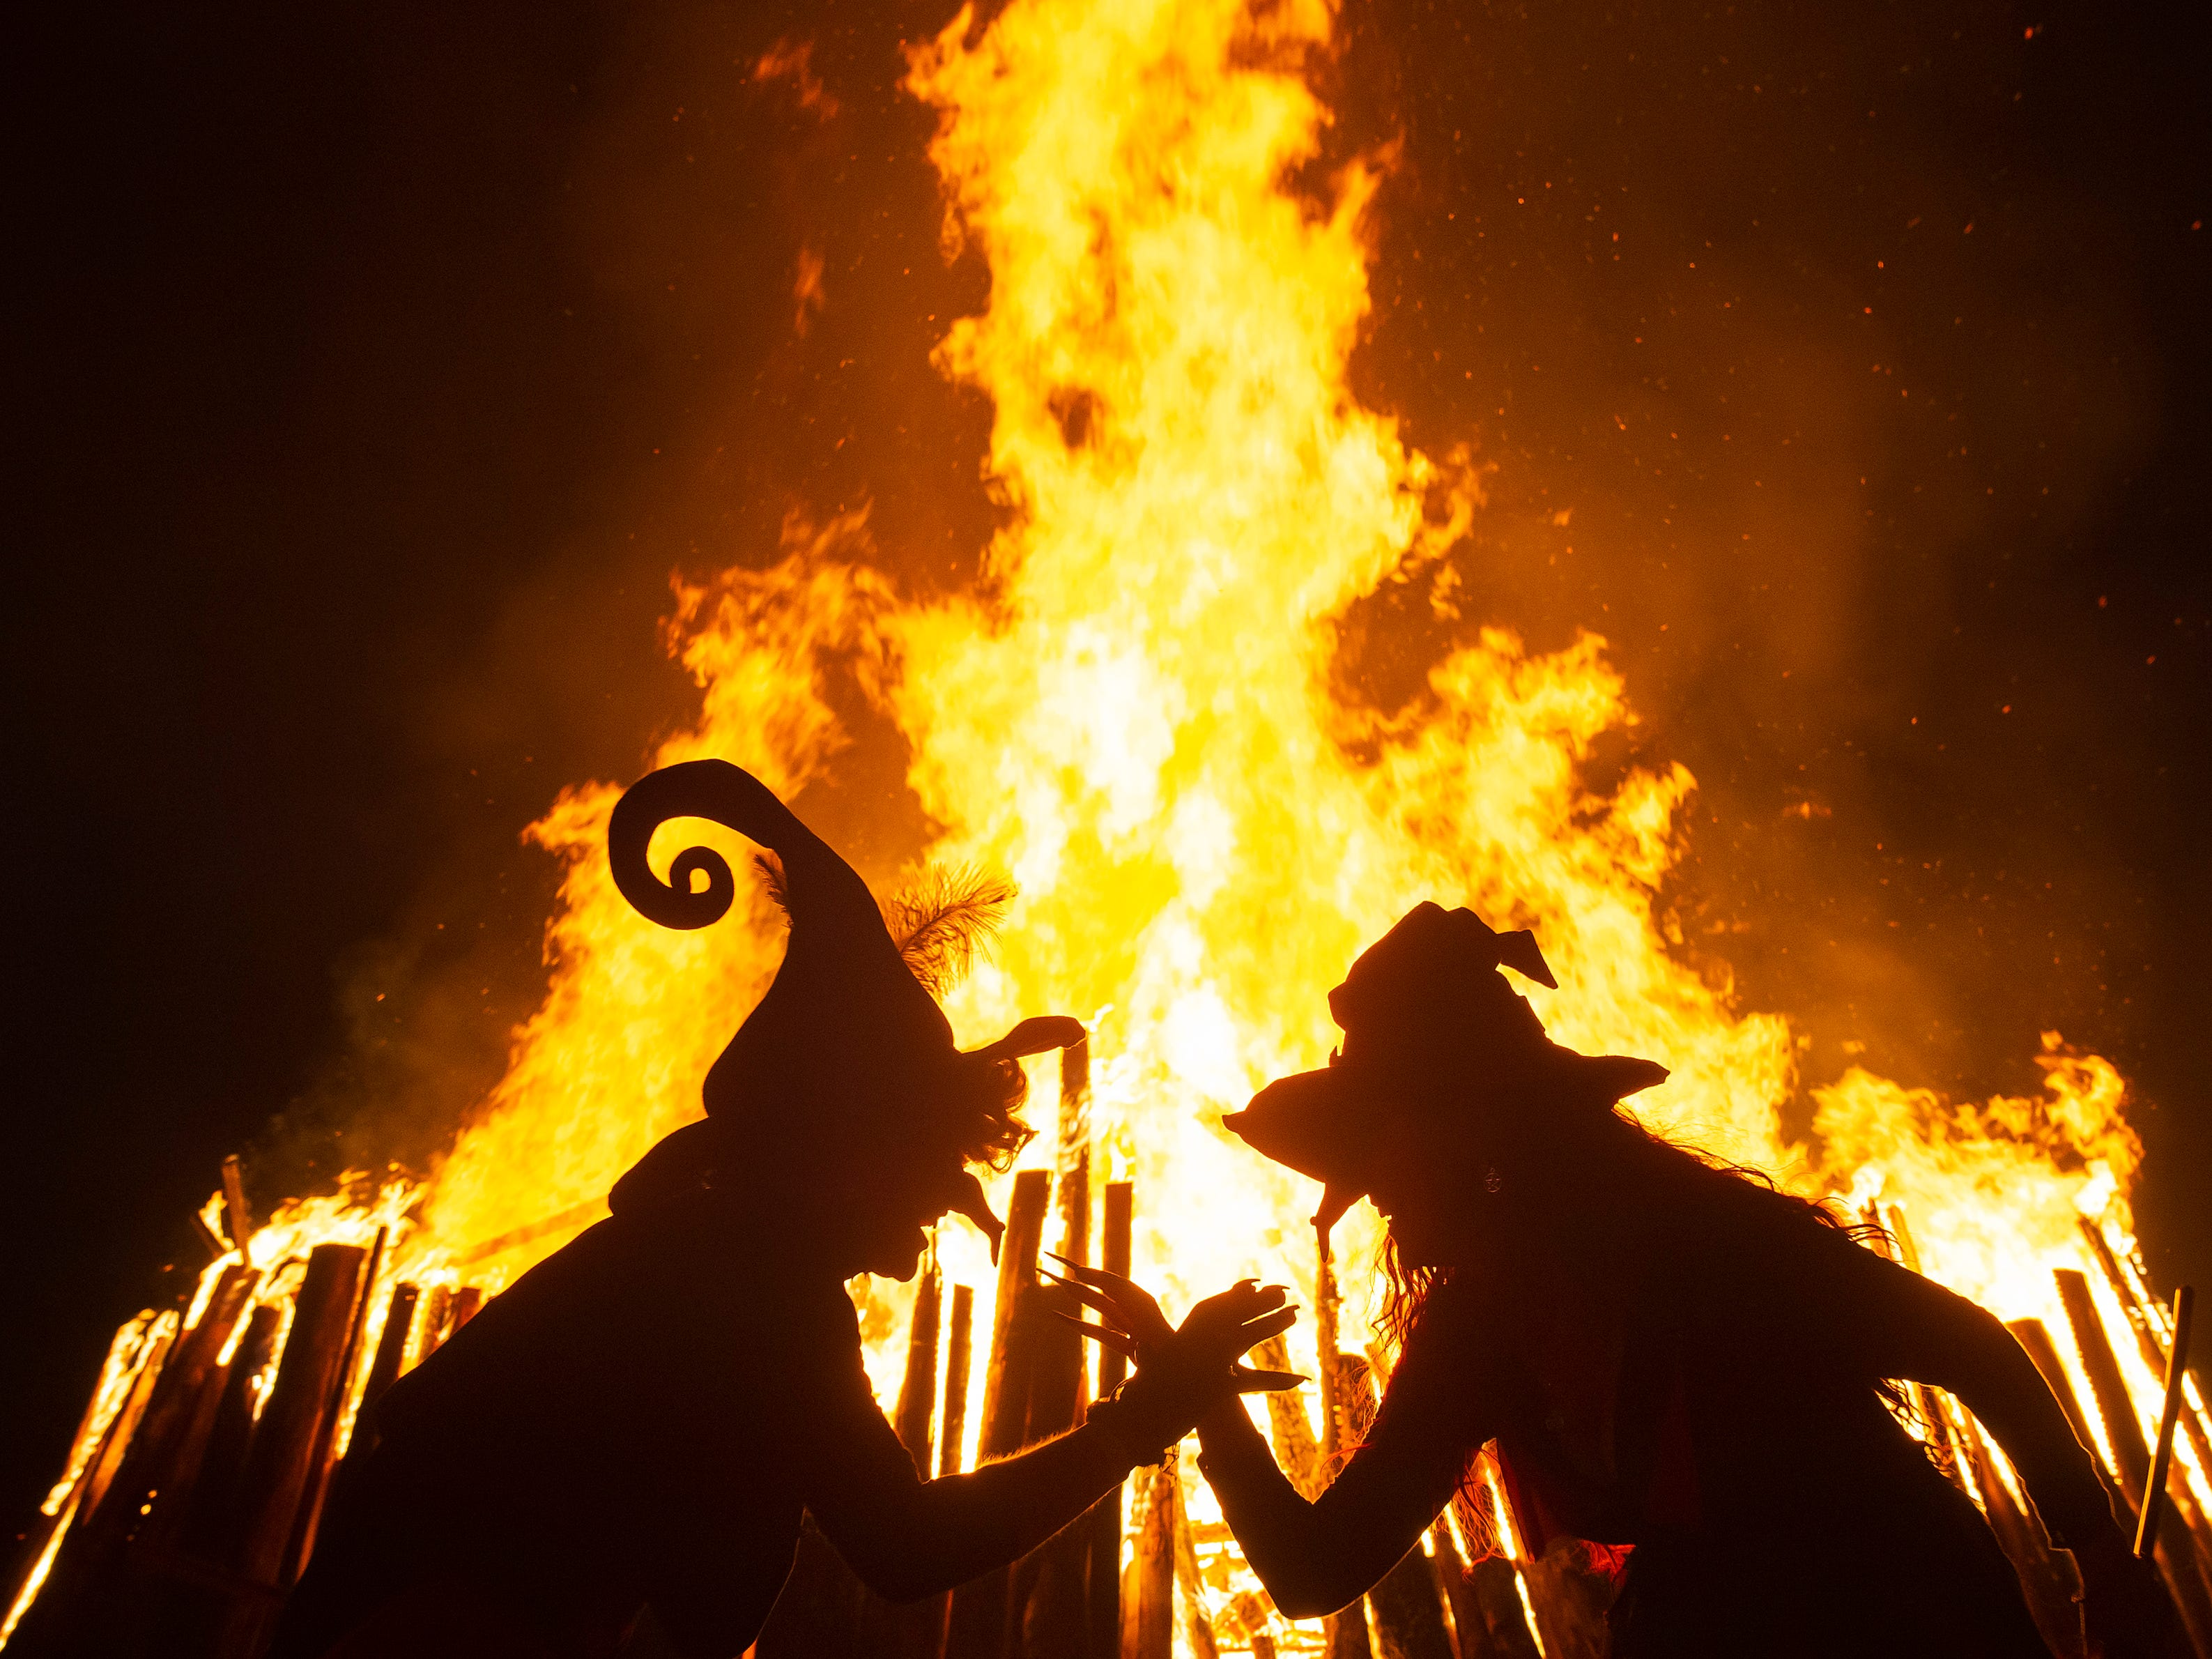 Women dressed as witches dance in front of the fire during the Walpurgis night in Erfurt, Germany, Tuesday, April 30, 2019. Costumed devils and witches meet to celebrate Walpurgis Night, a traditional religious holiday of pre-Christian origins. The event is named after St. Walburga, an English nun who helped convert the Germans to Christianity in the 8th century.